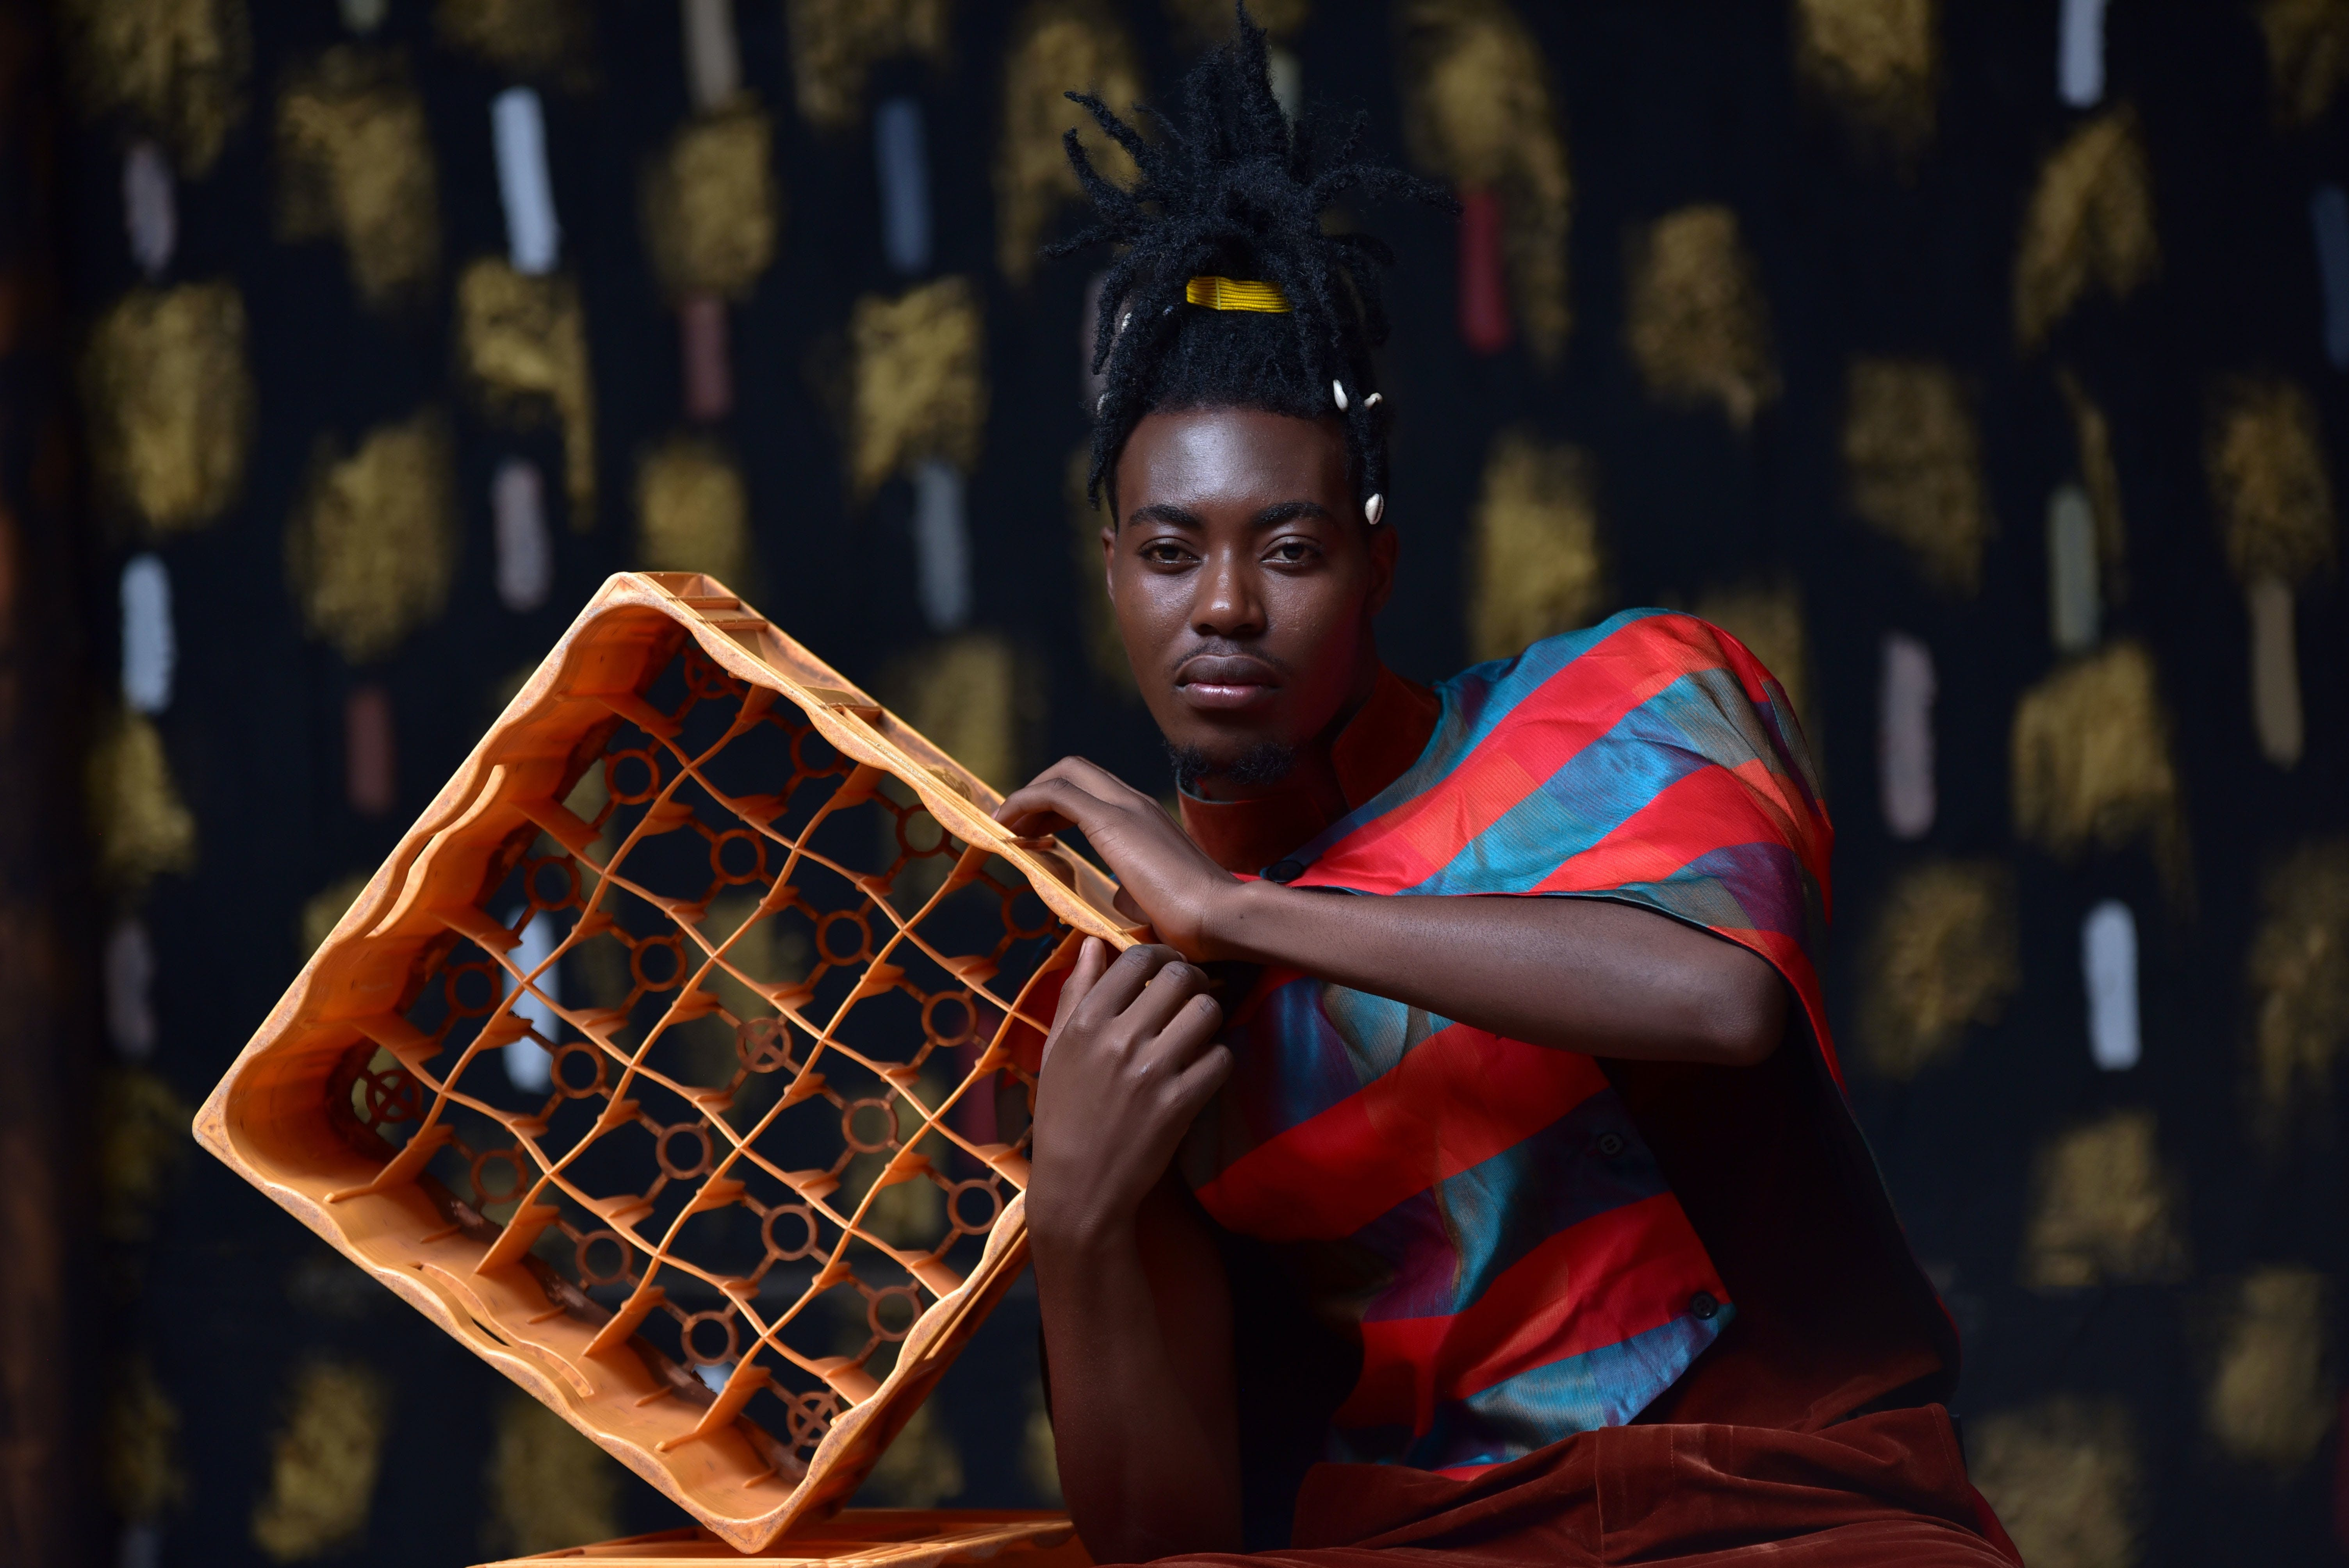 Photography of Person Holding Plastic Bottle Crate